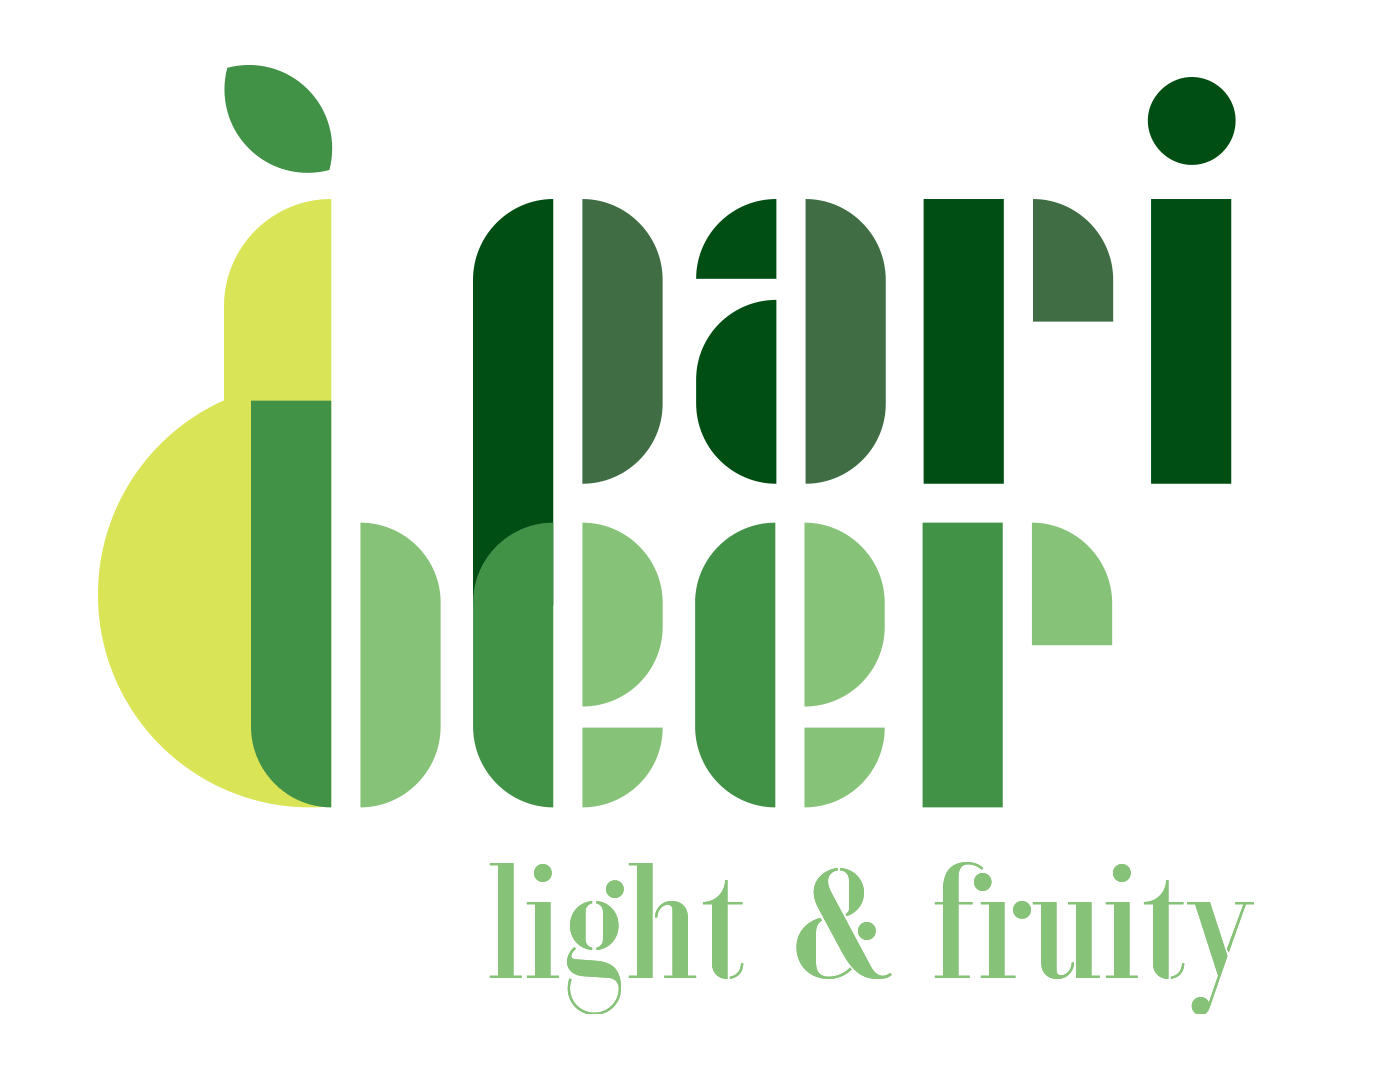 Final result of the Paribeer logo